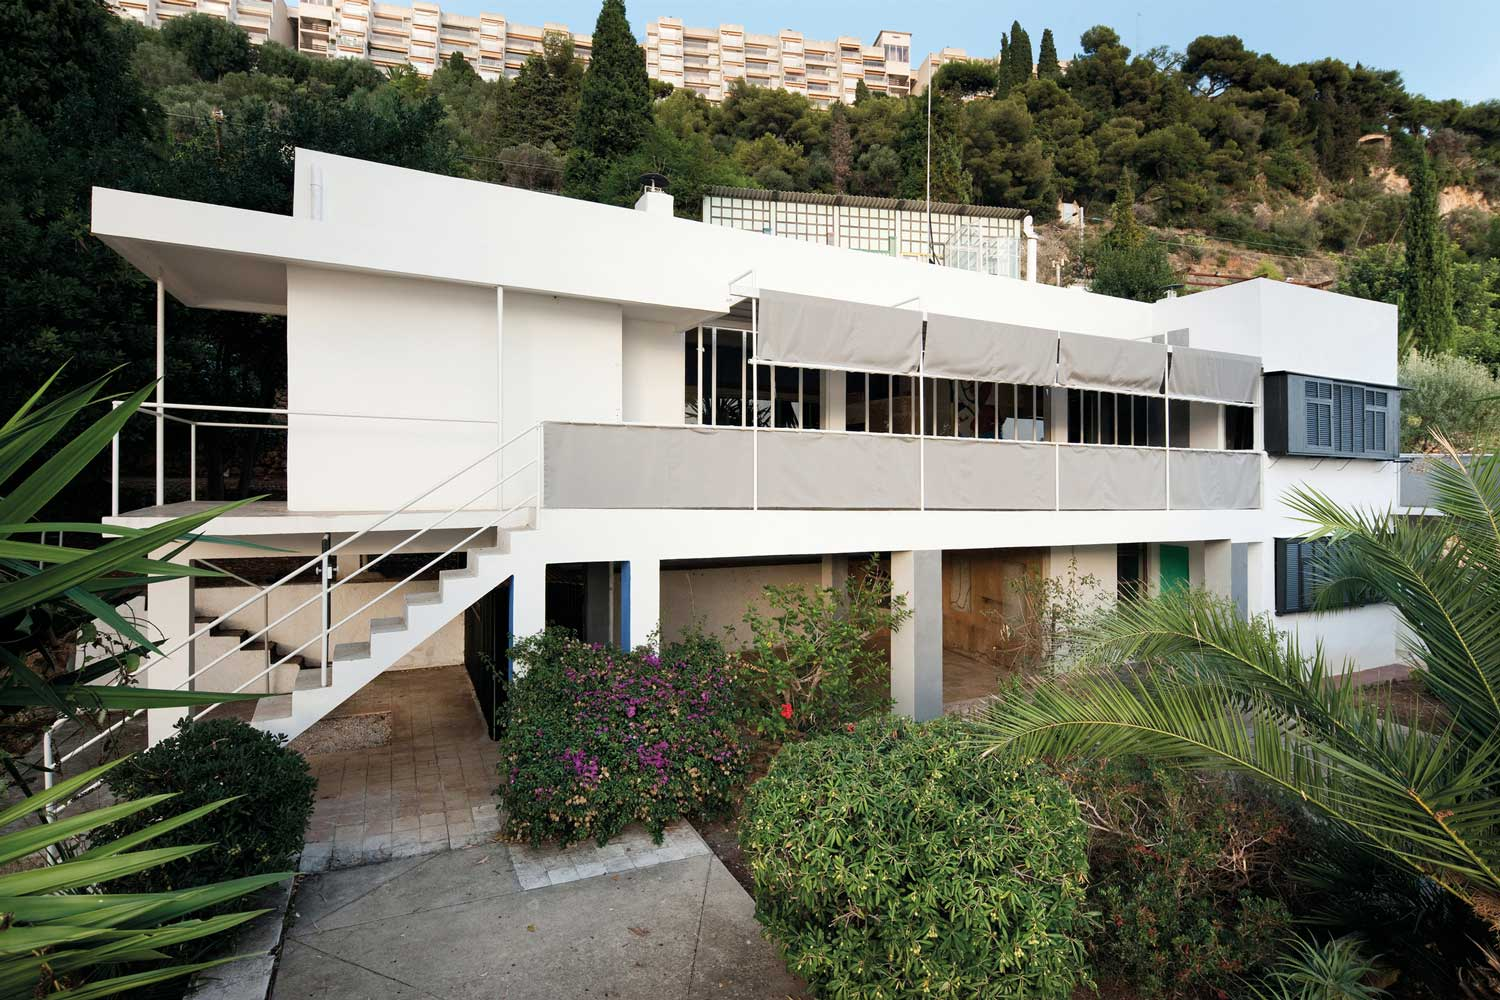 Restoration of Villa E 1027 by Eileen Gray. Photo by Manuel Bougo | Yellowtrace